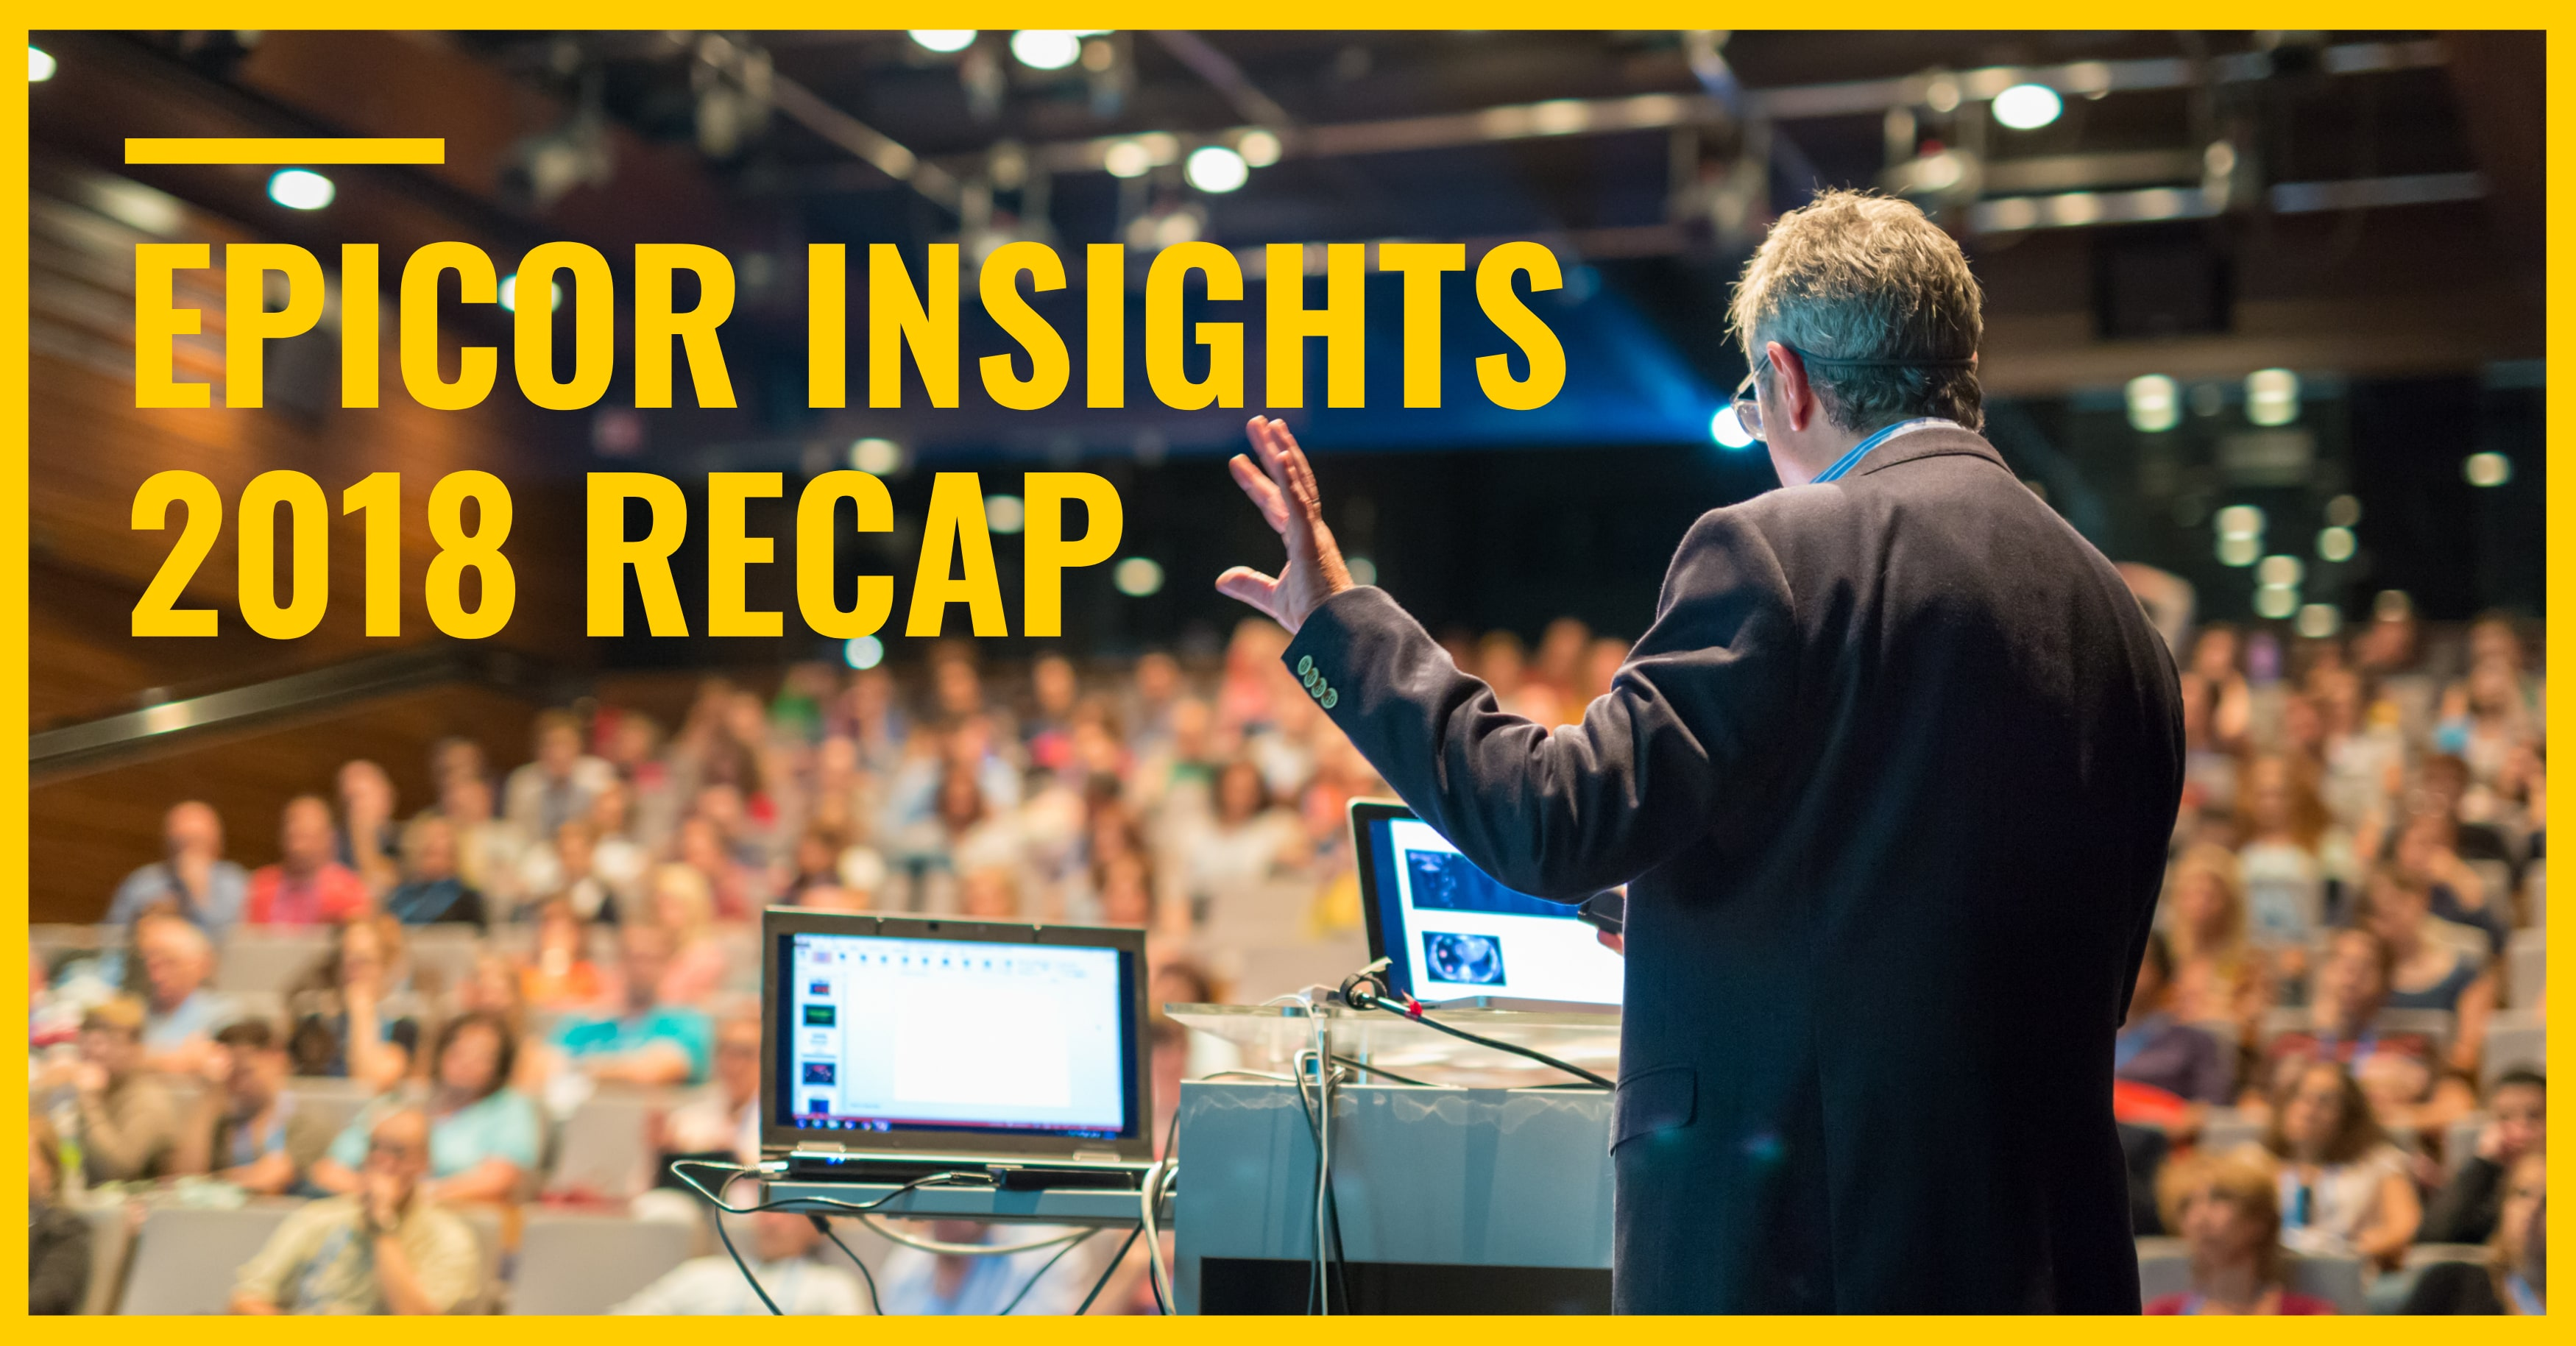 Epicor Insights 2018 Recap